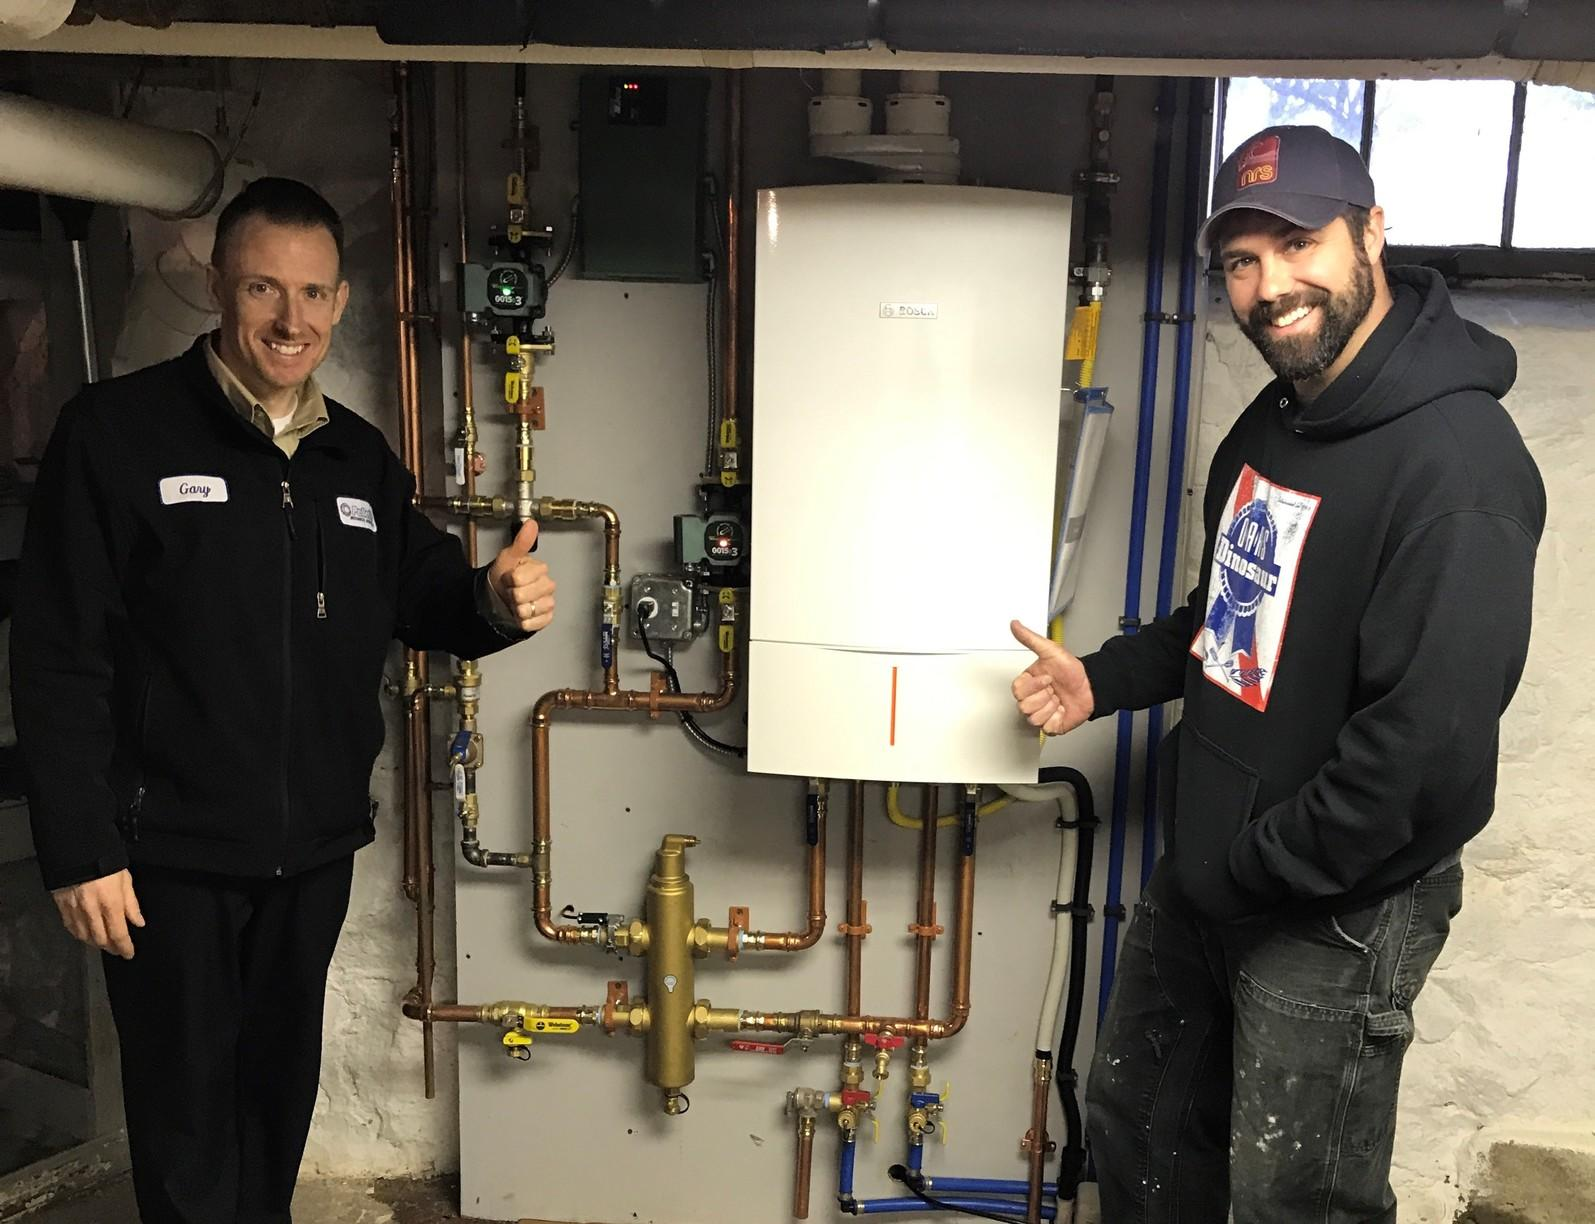 Pelletier technicians and a completed gas furnace upgrade